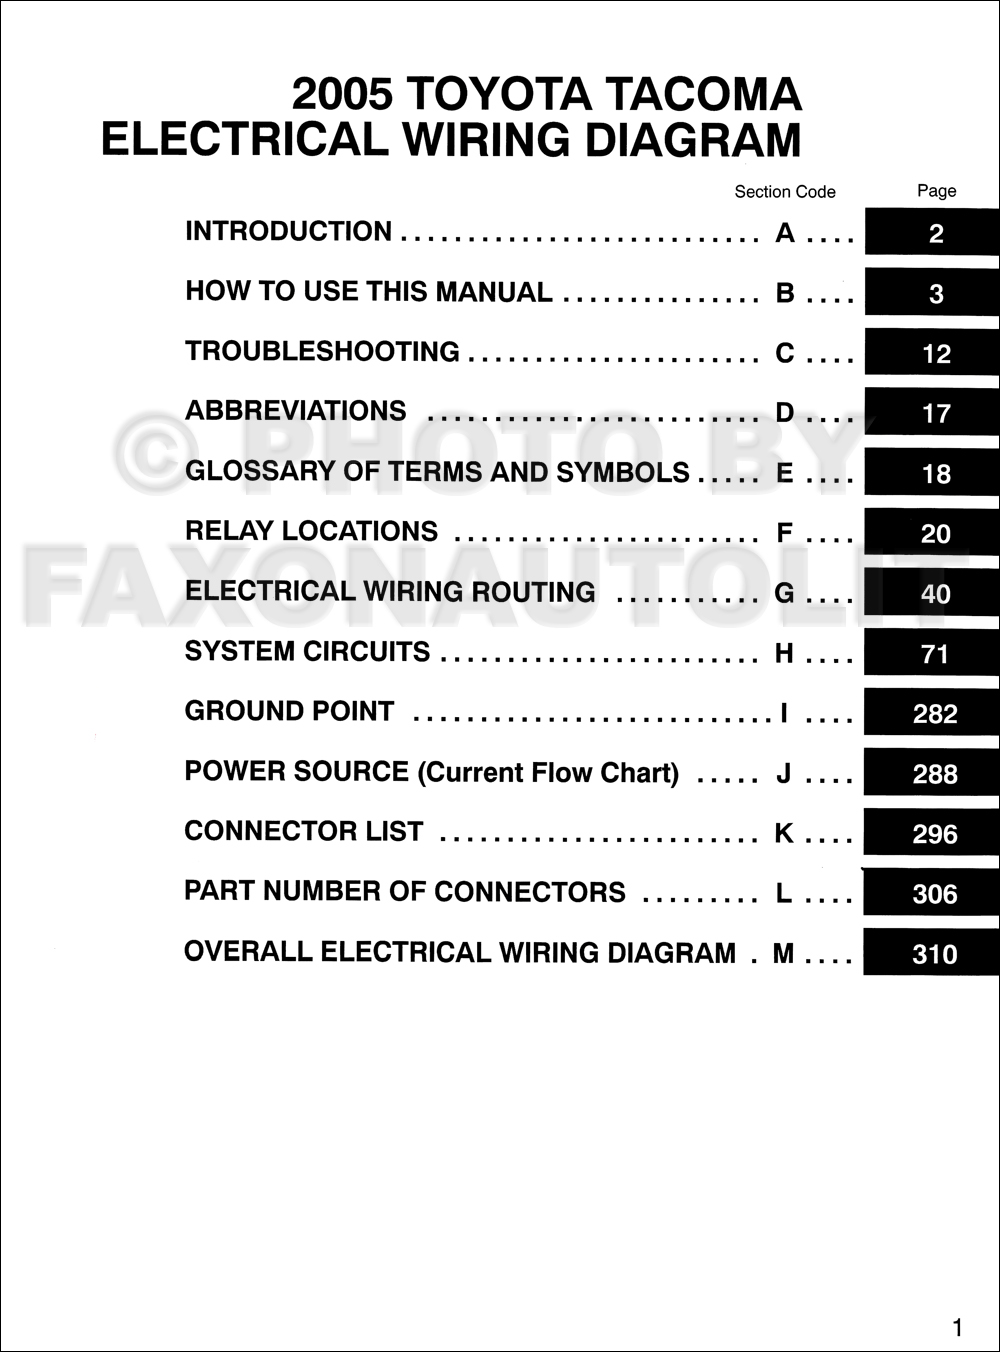 2005ToyotaTacomaOWD TOC 2005 toyota tacoma pickup wiring diagram manual original Tacoma Body Parts Diagram at creativeand.co